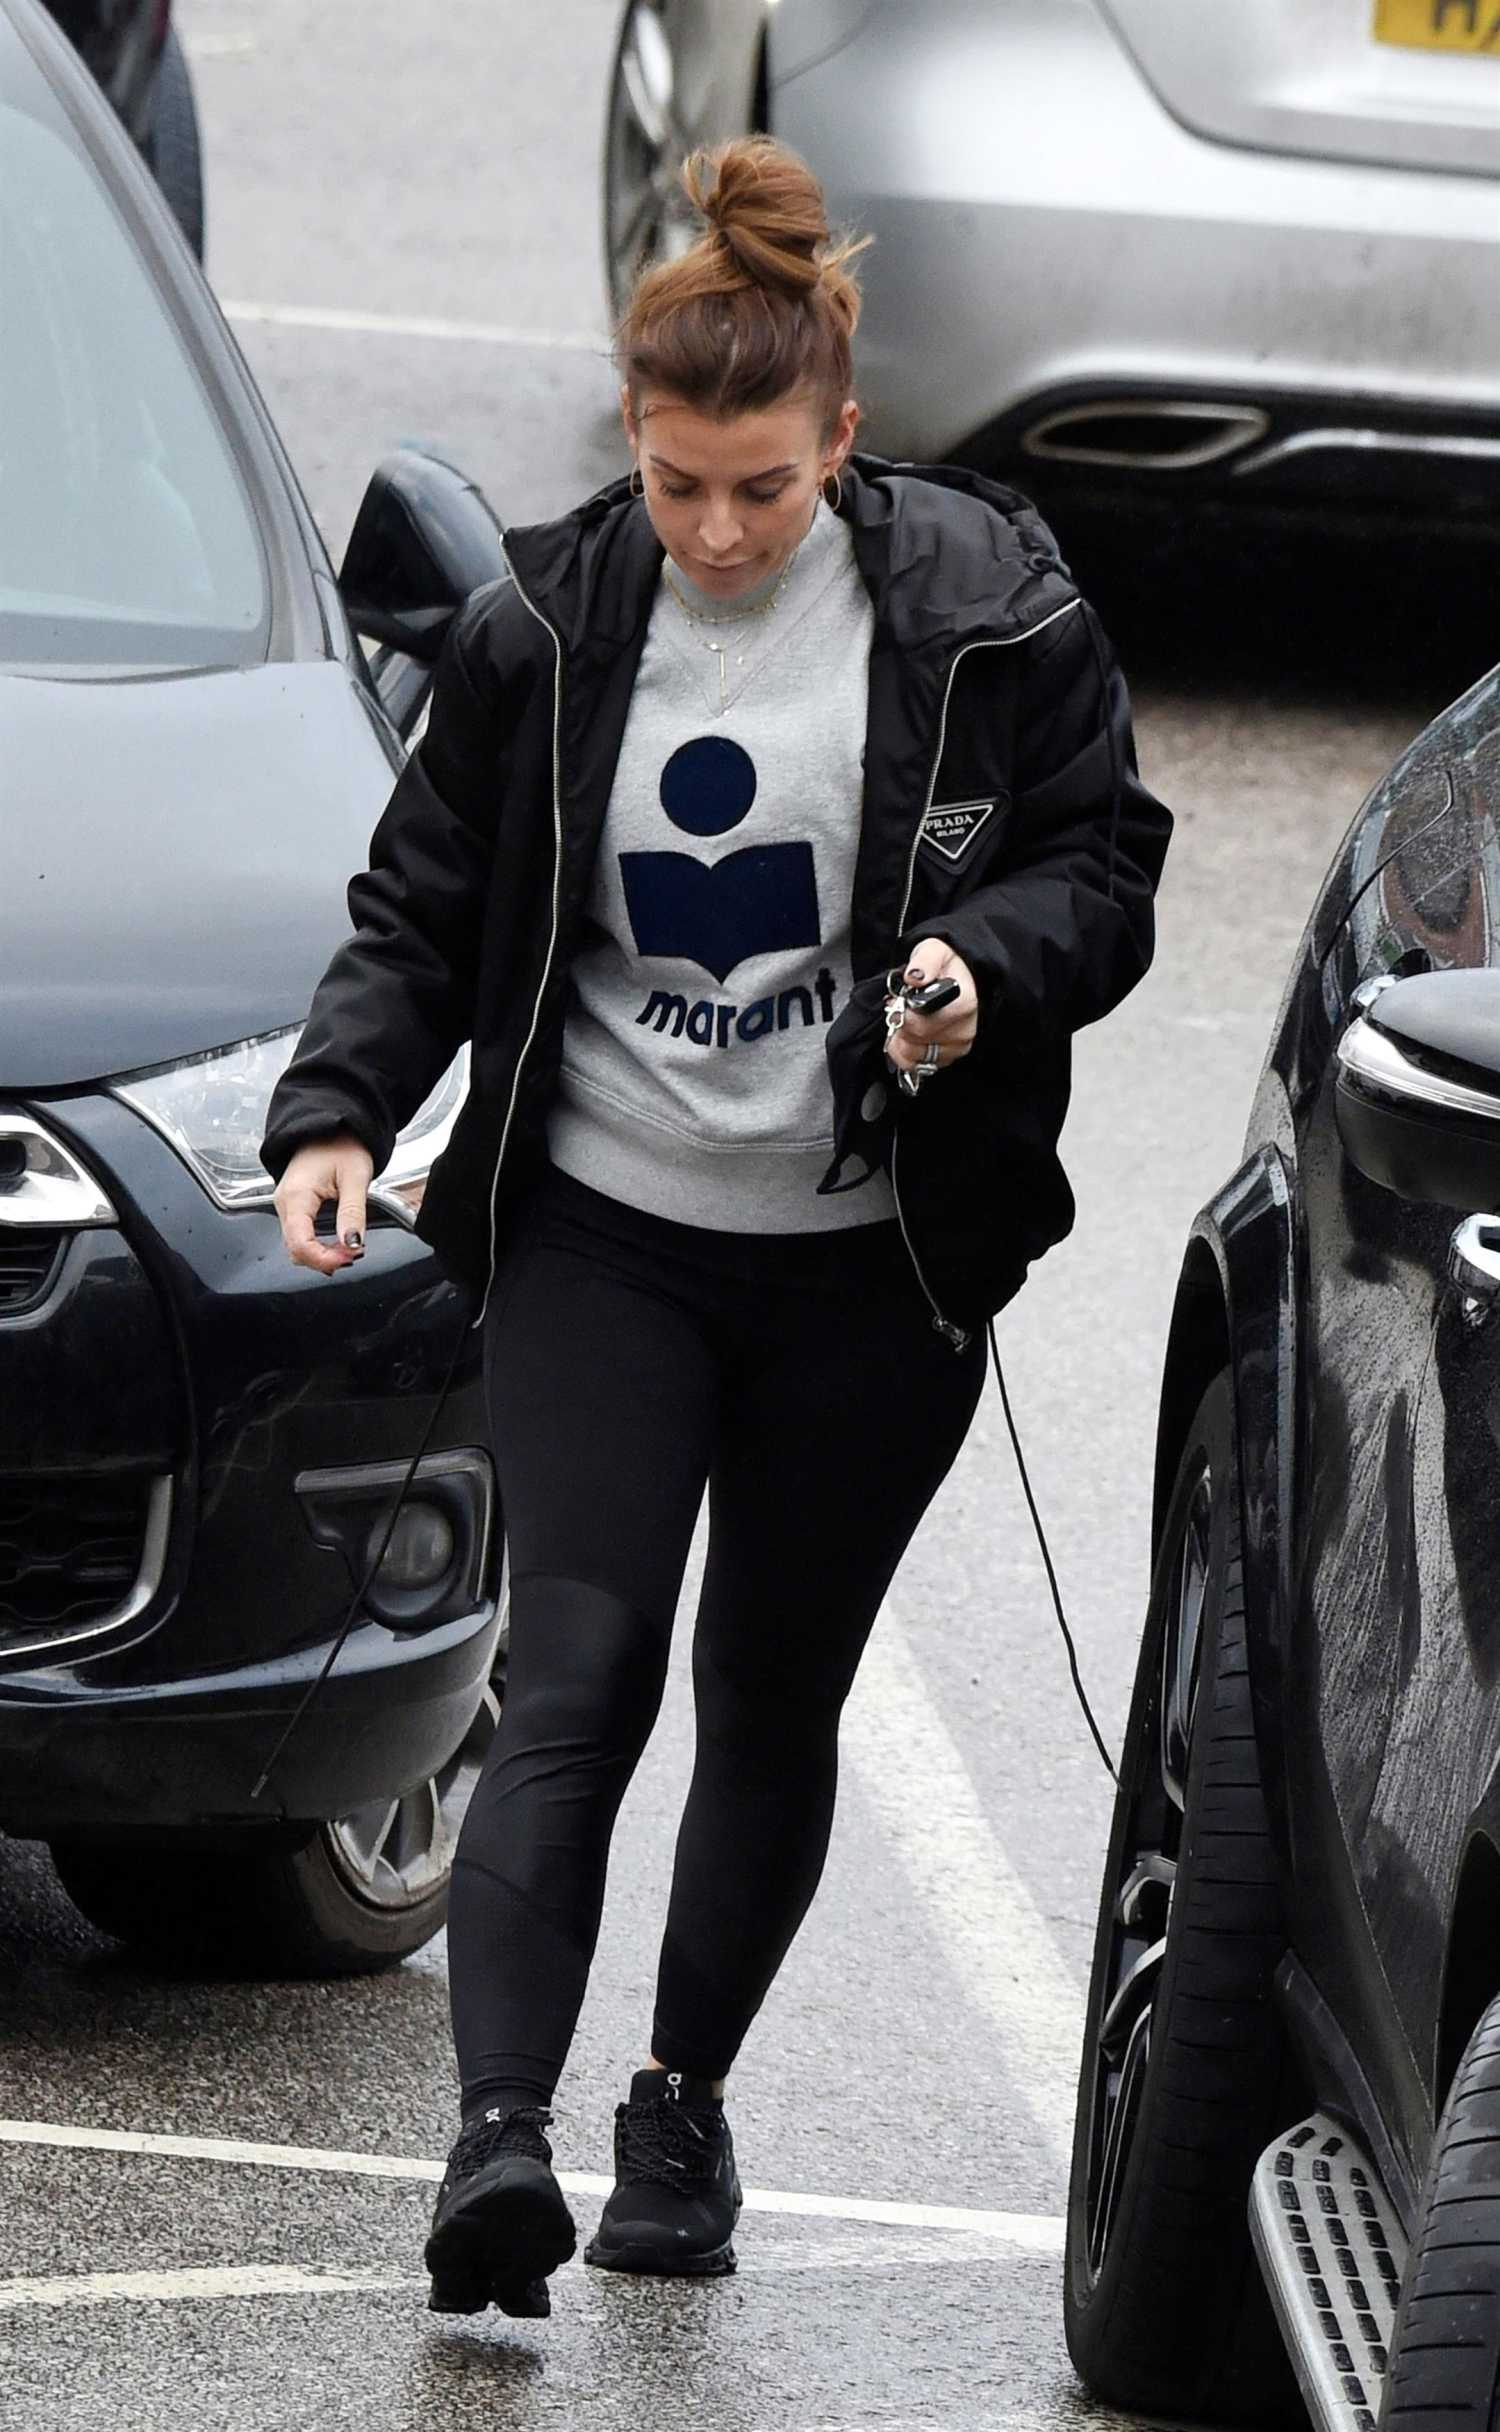 Coleen Rooney in a Black Prada Jacket Goes Shopping at Waitrose in Cheshire – Celeb Donut